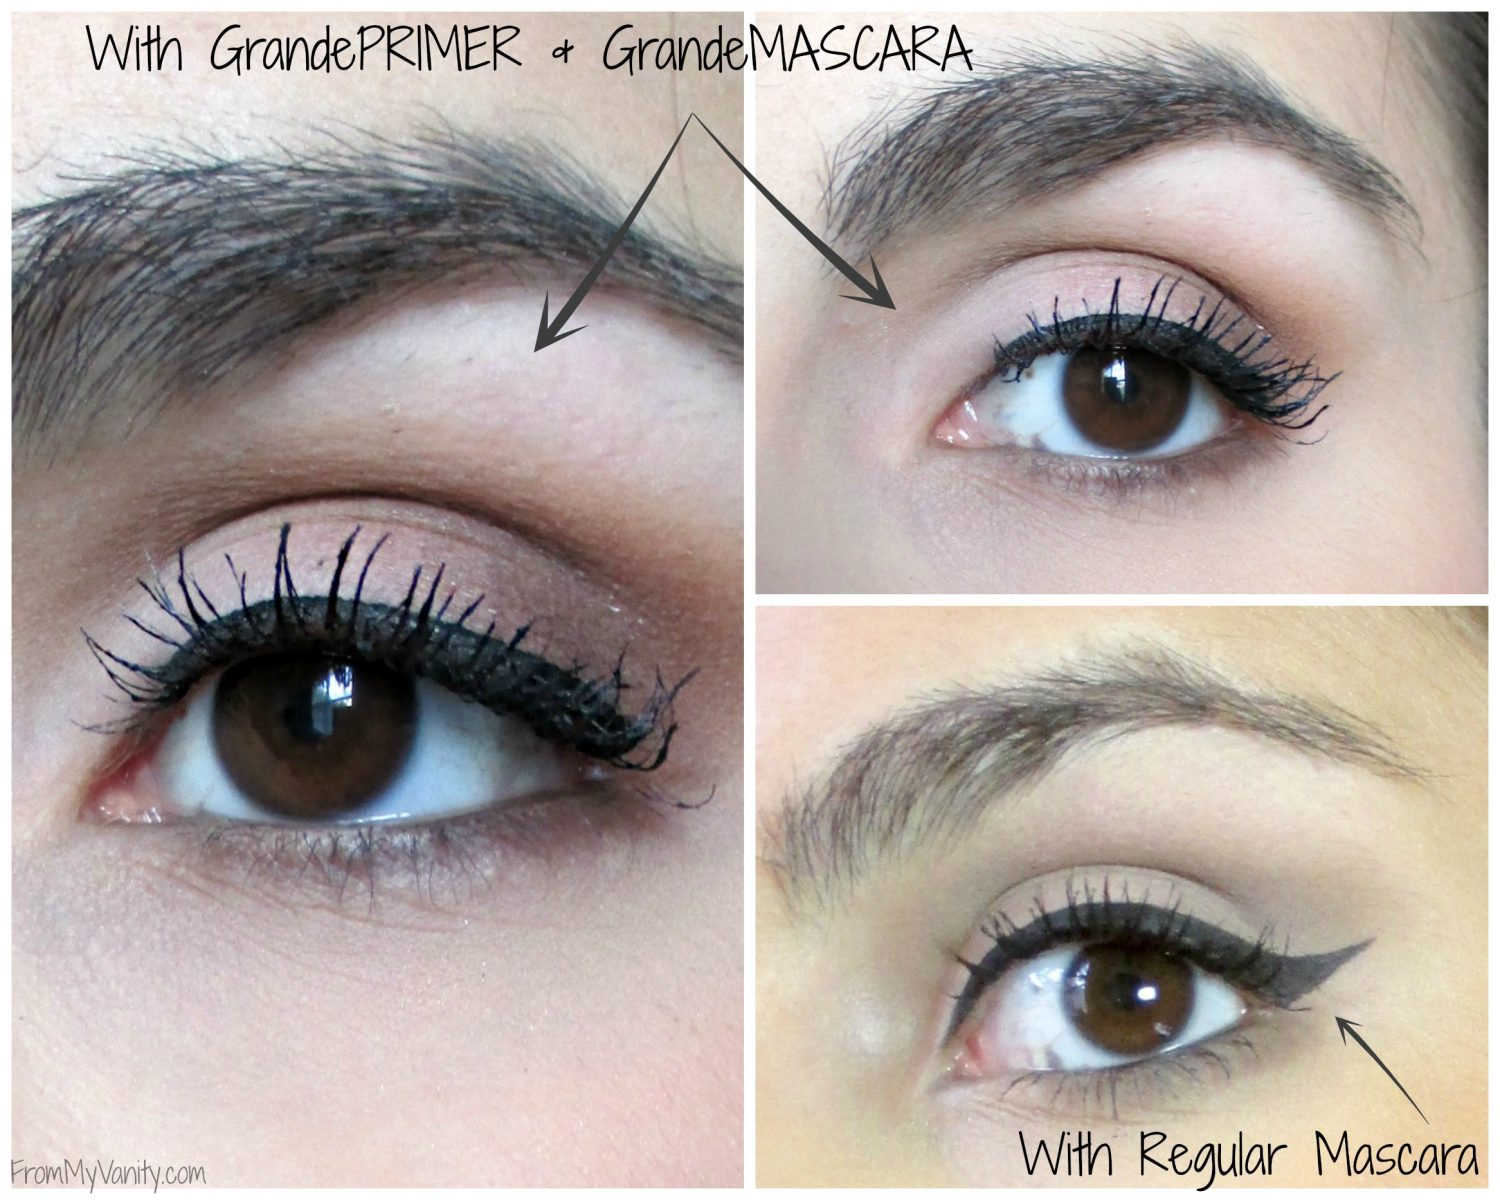 Grande Lash MD's GrandeLASH, GradePRIMER, and GrandeMASCARA Review // Pictures Showing Lashes with and without GrandePrimer and GrandeMASCARA // #GrandeLashMD #LongLashes// FromMyVanity.com